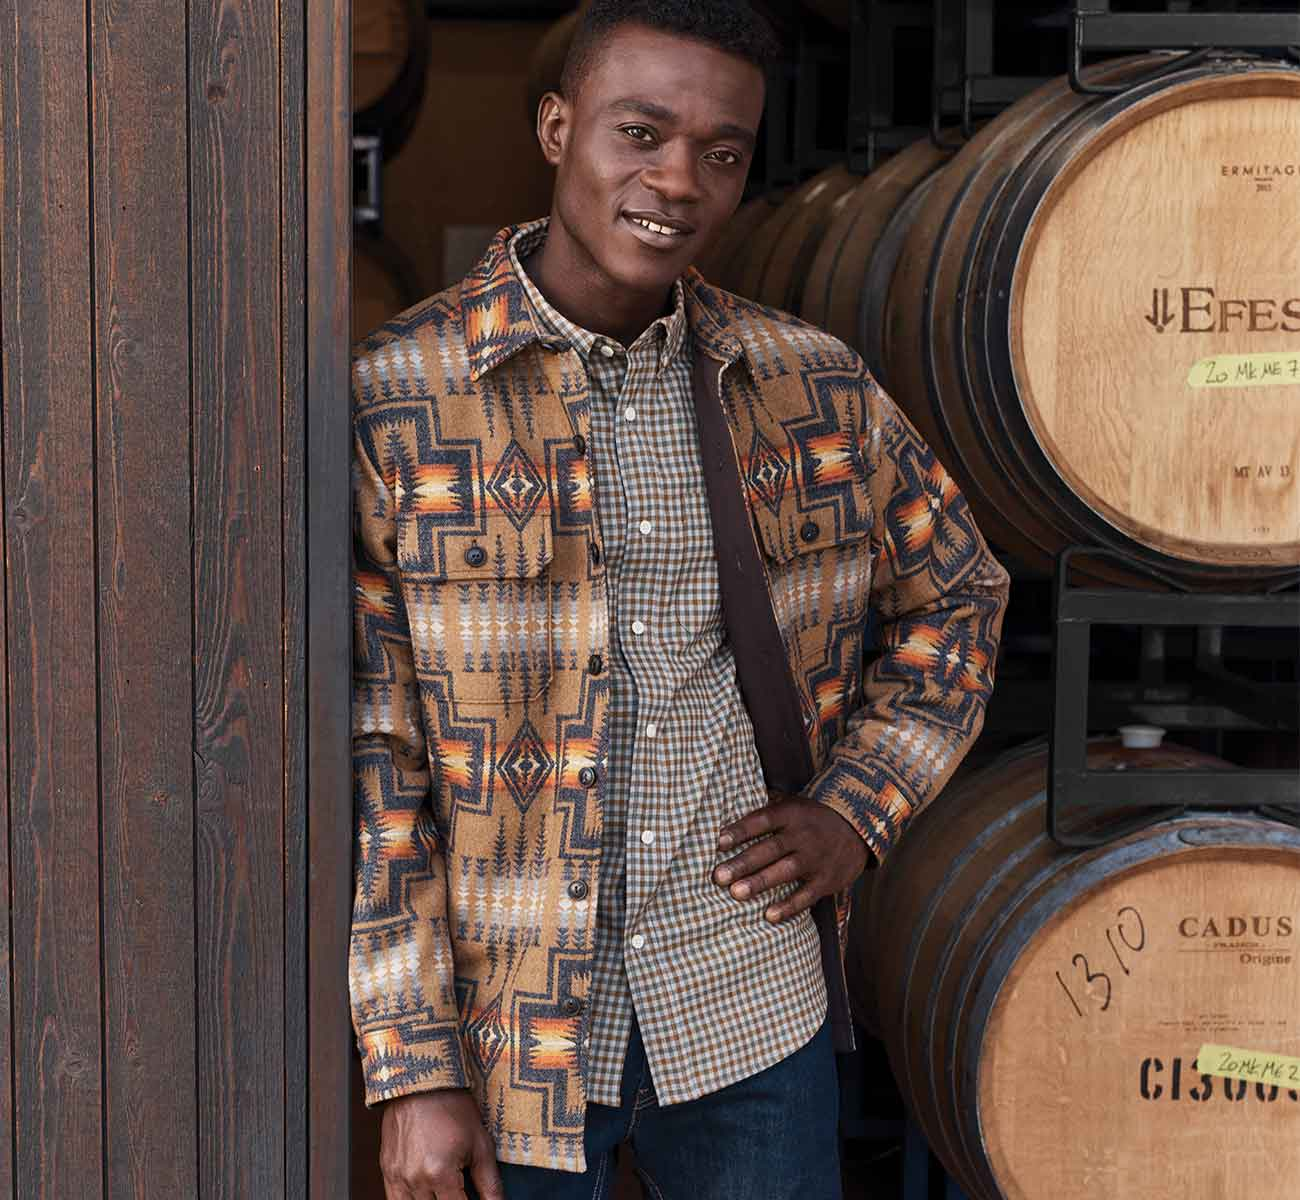 Man wearing a quilted shirt jacket standing in a barn door